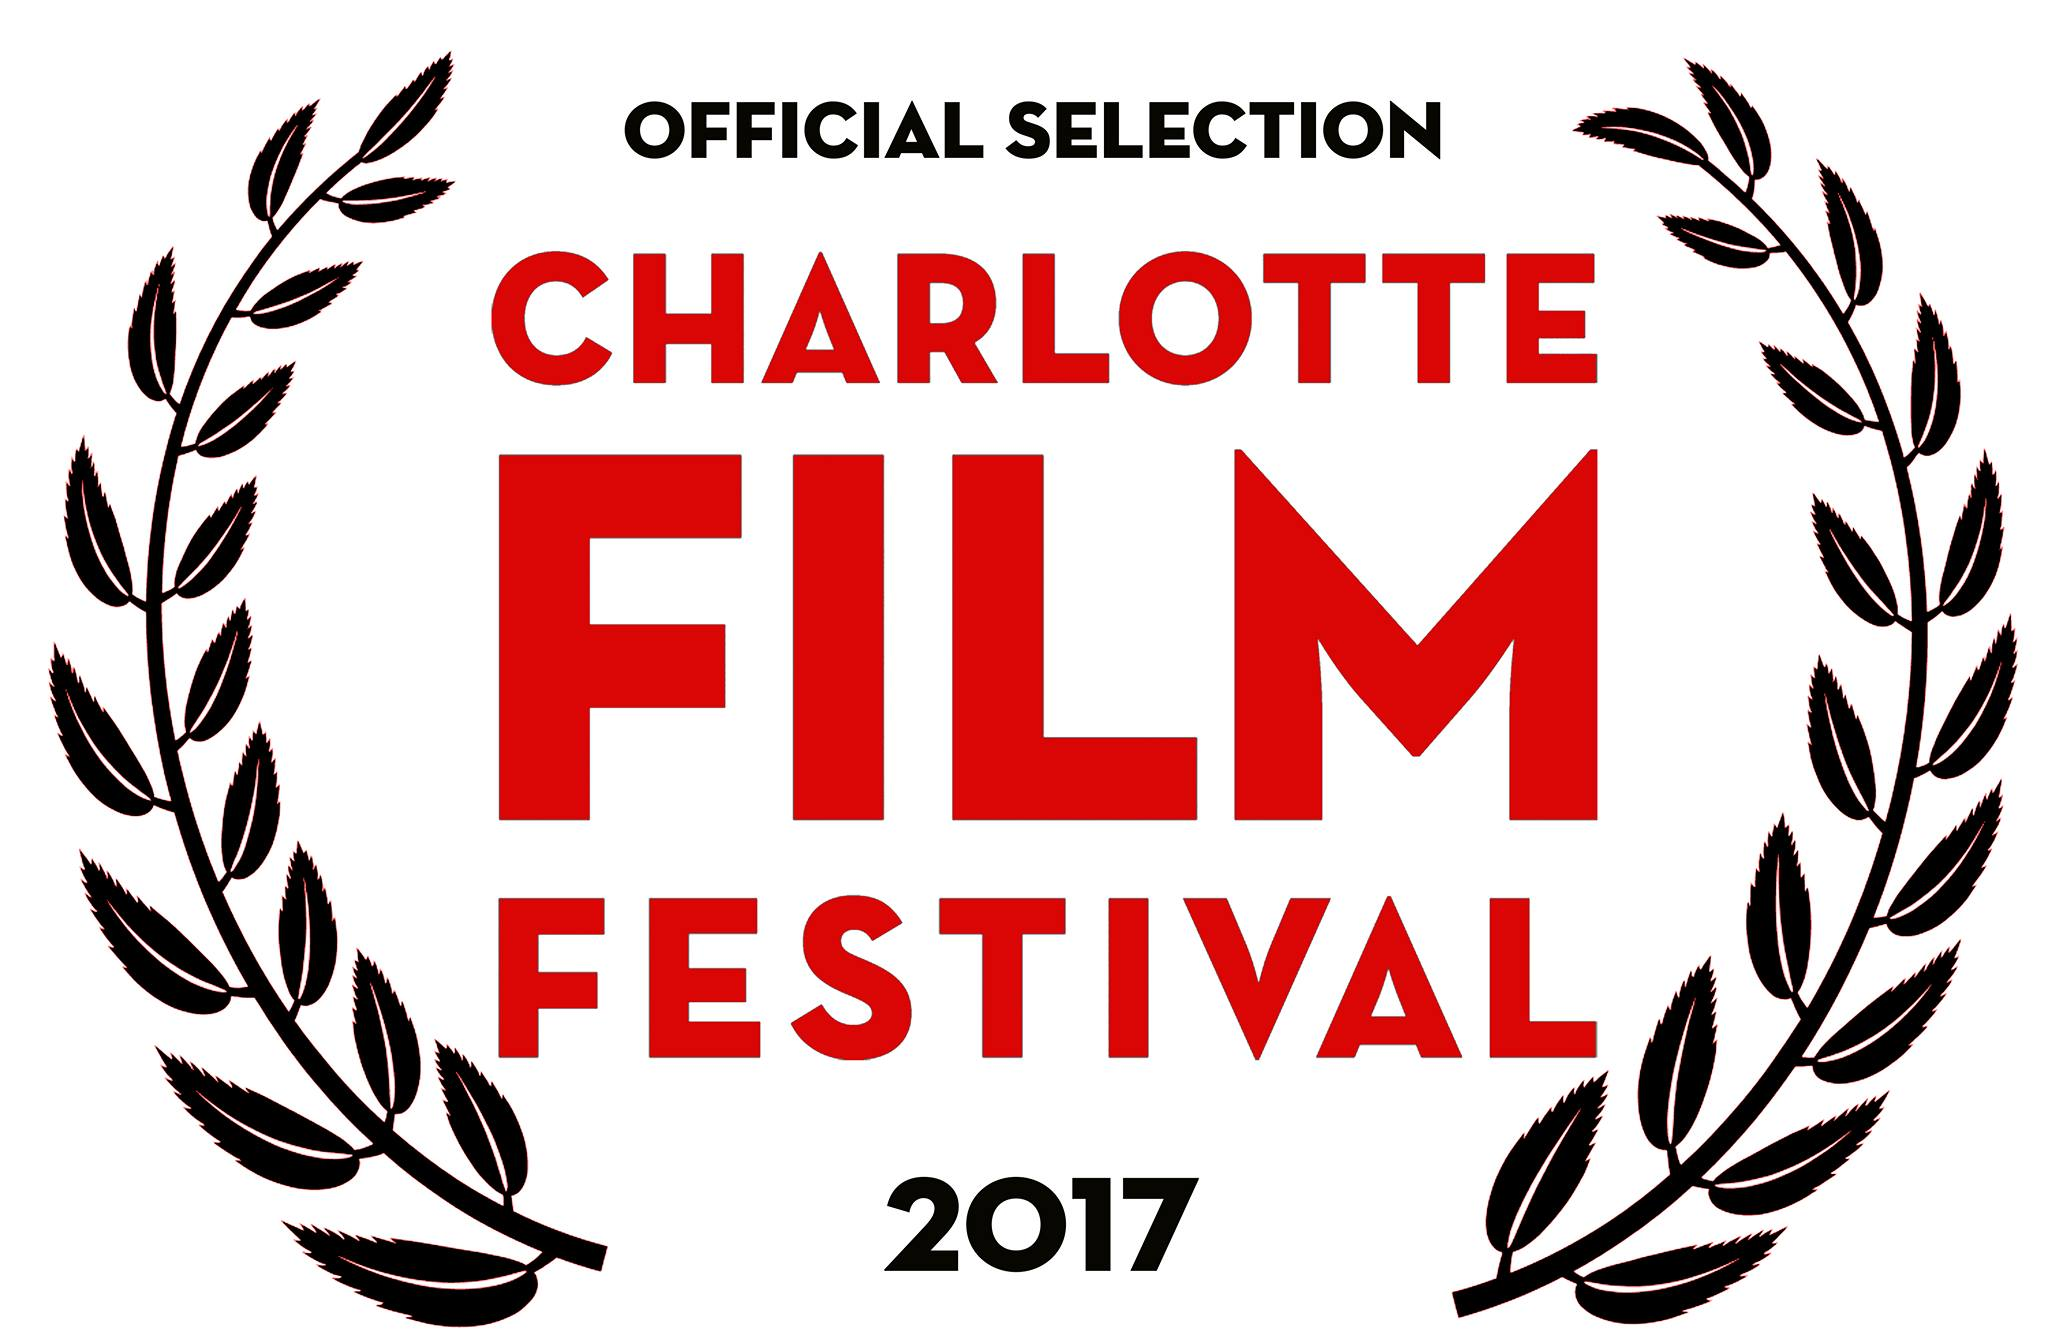 Charlotte Film Festival - We are thrilled to have Baggage officially featured in the upcoming Charlotte Film Festival at the end of September! Check out their page for more updates and information.